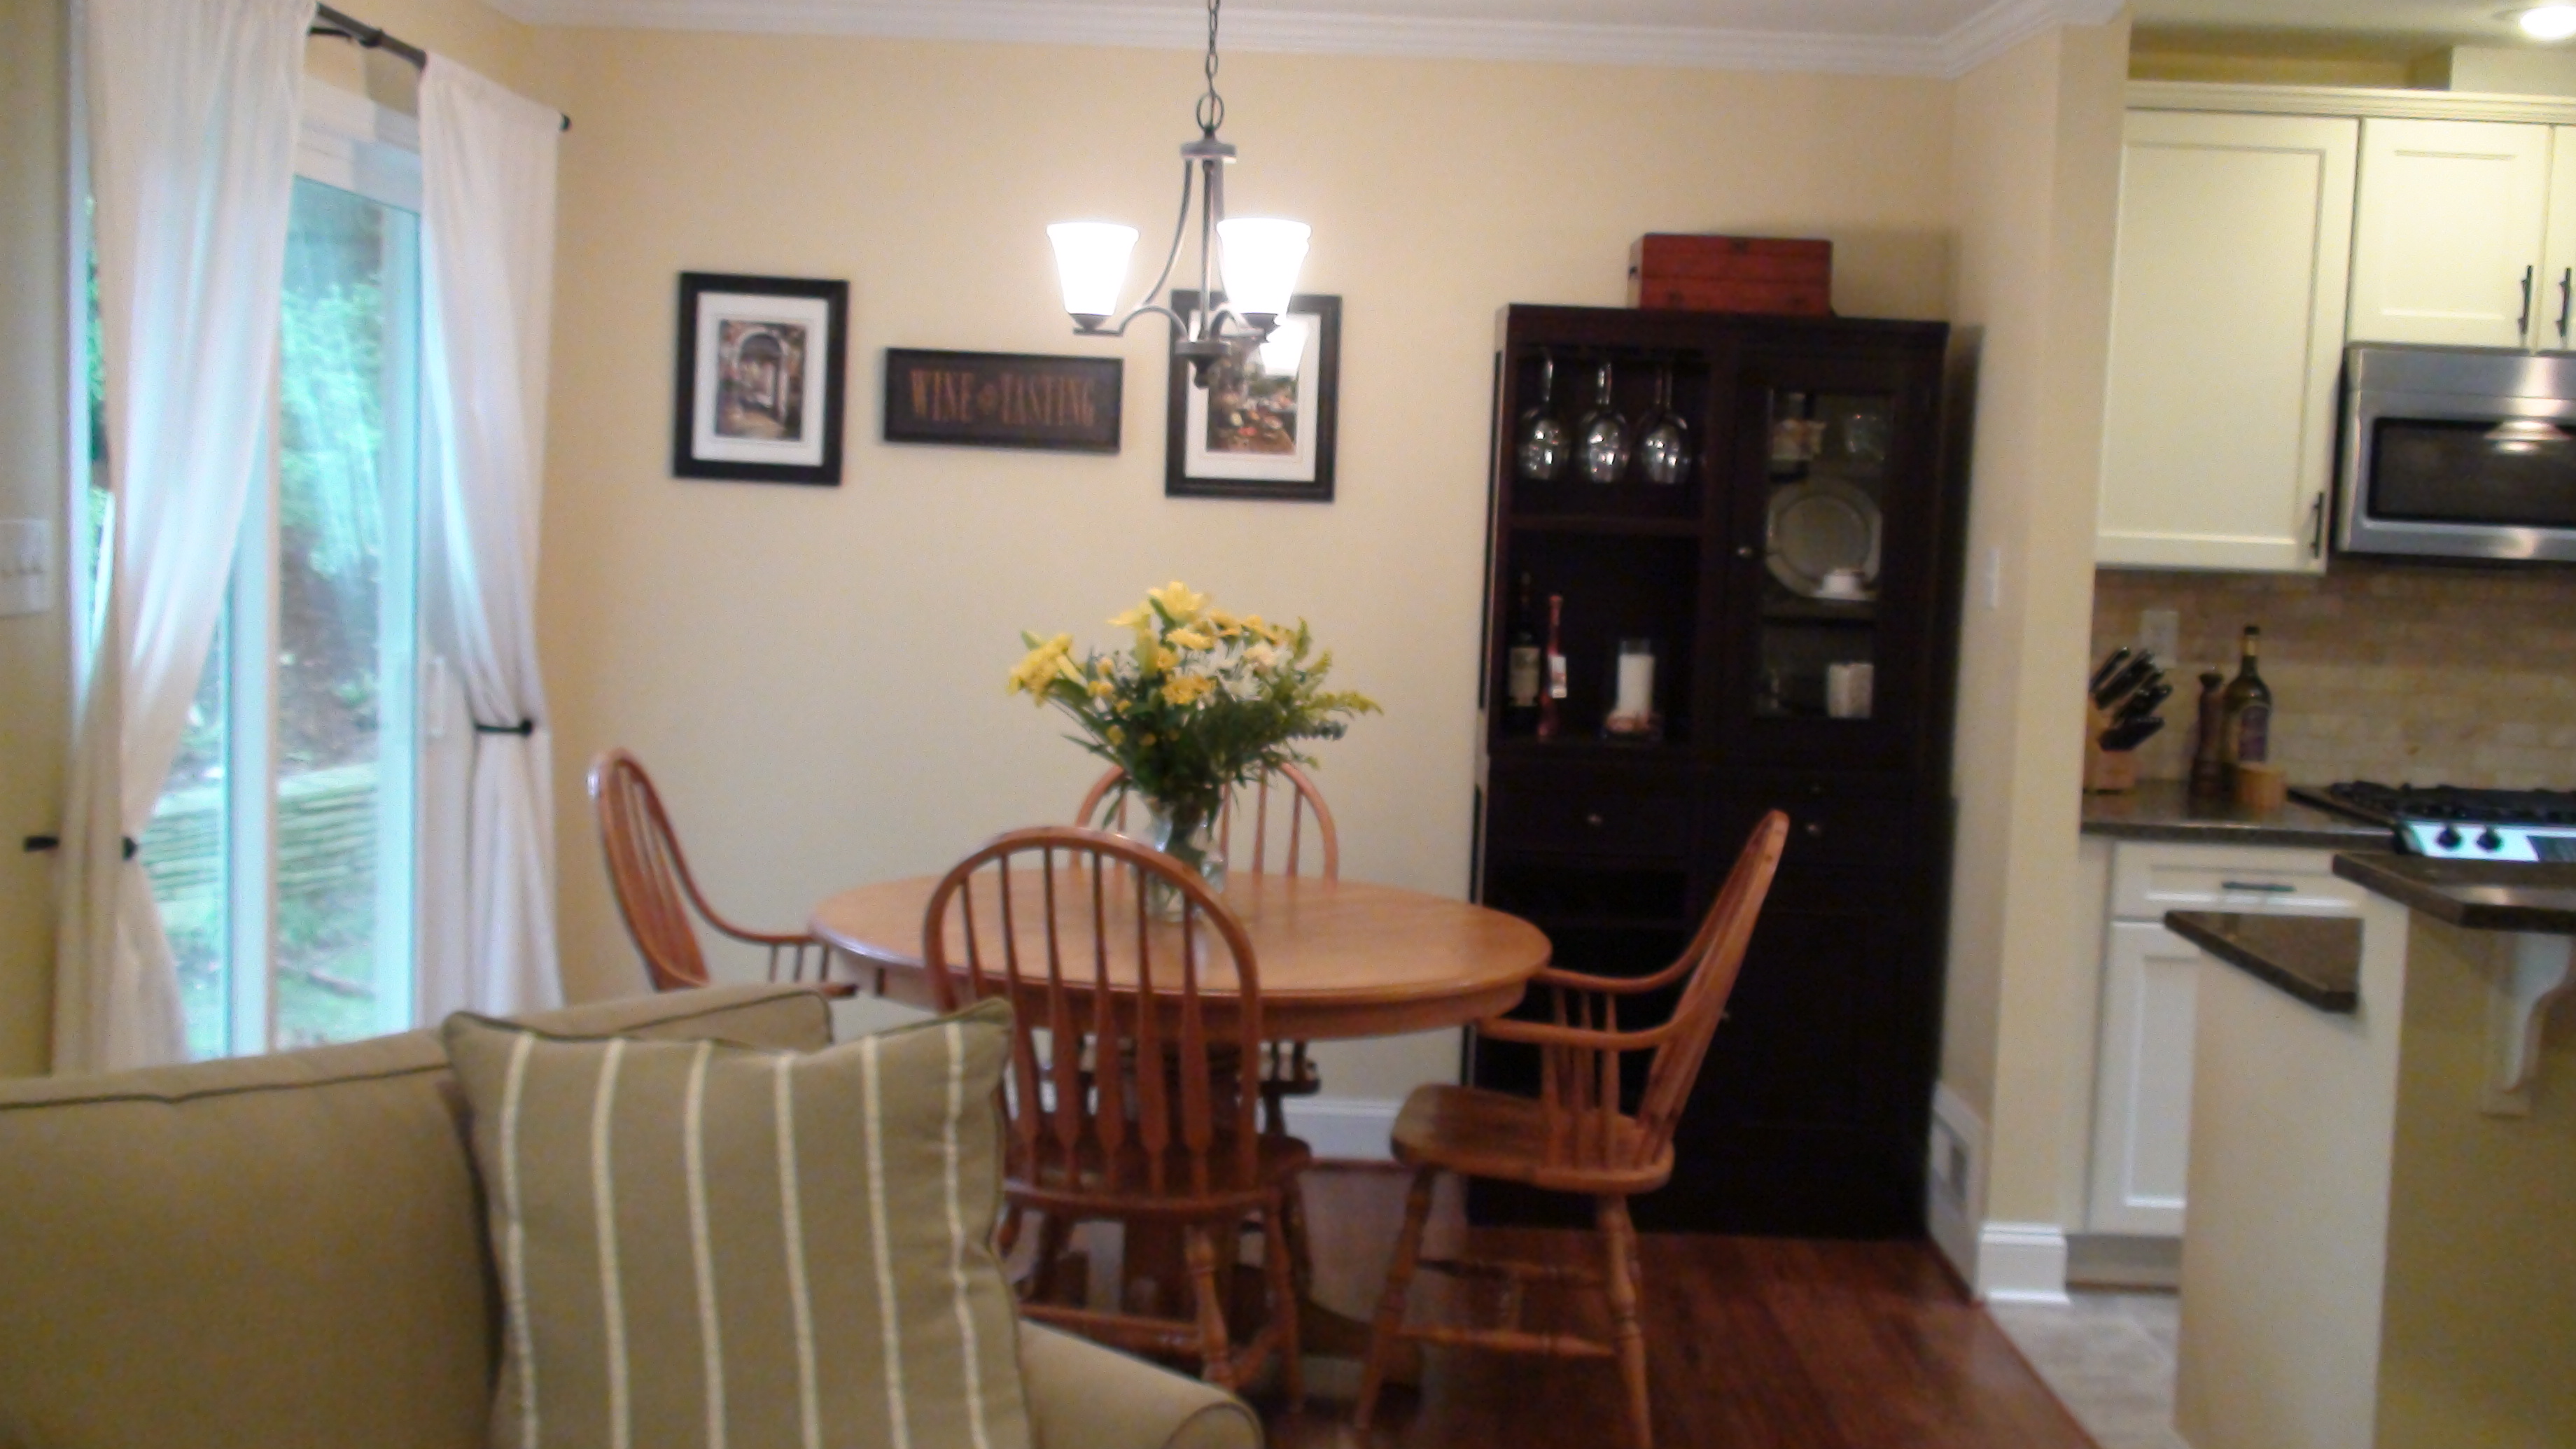 dining in style eat in kitchen table Dining room table in previous home